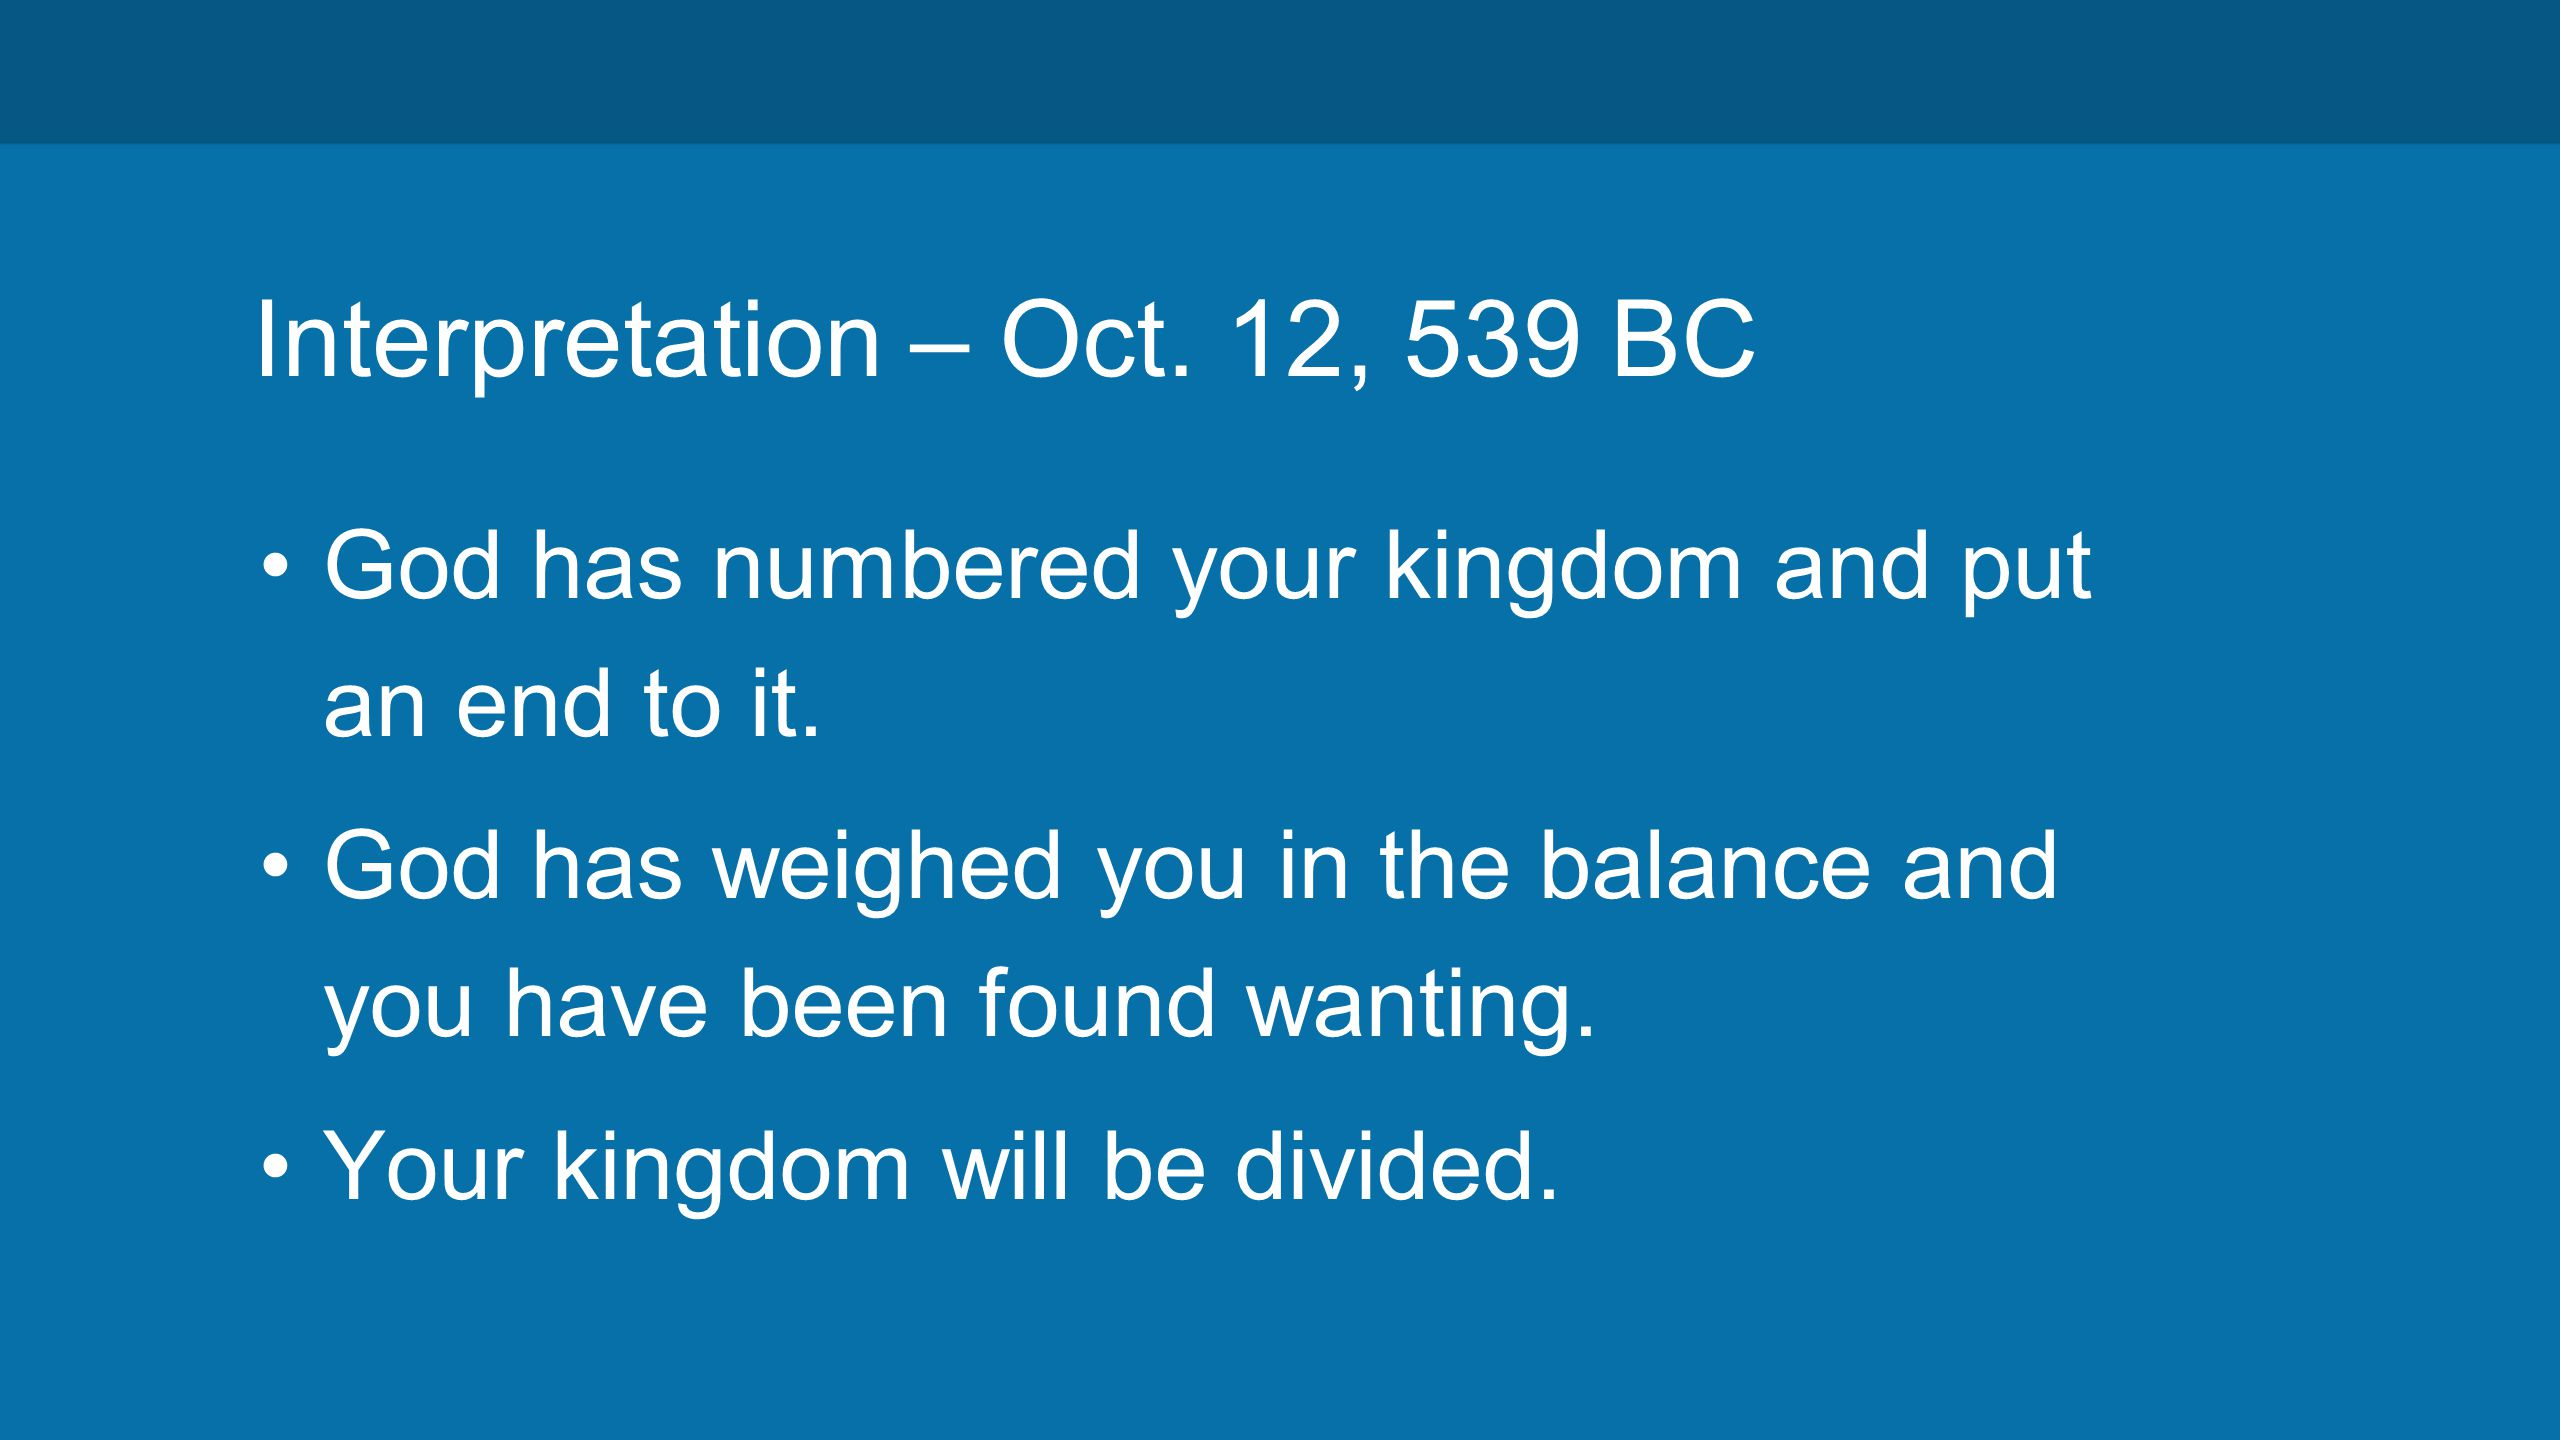 Interpretation – Oct. 12, 539 BC God has numbered your kingdom and put an end to it.